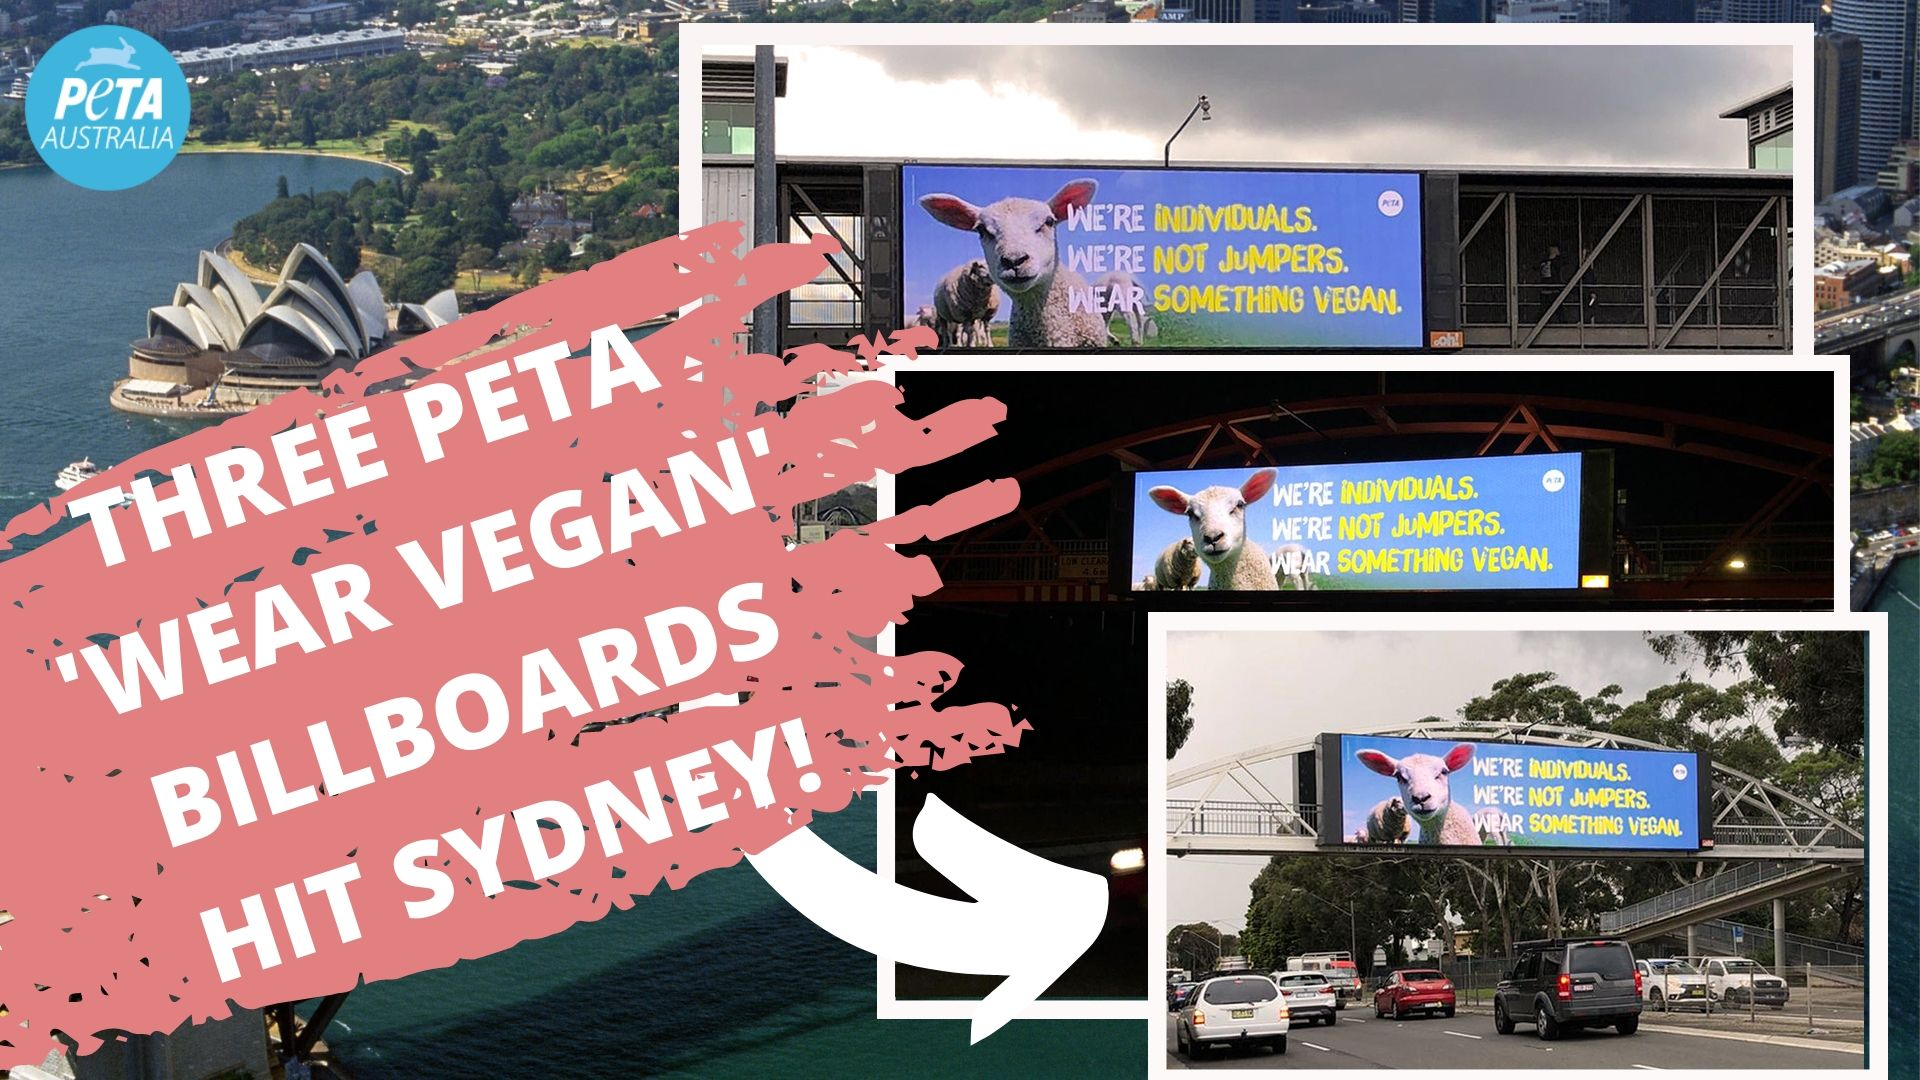 """A collage of the three PETA billboards in Sydney which say """"We're Individuals, We're Not Jumpers, Wear Something Vegan."""""""